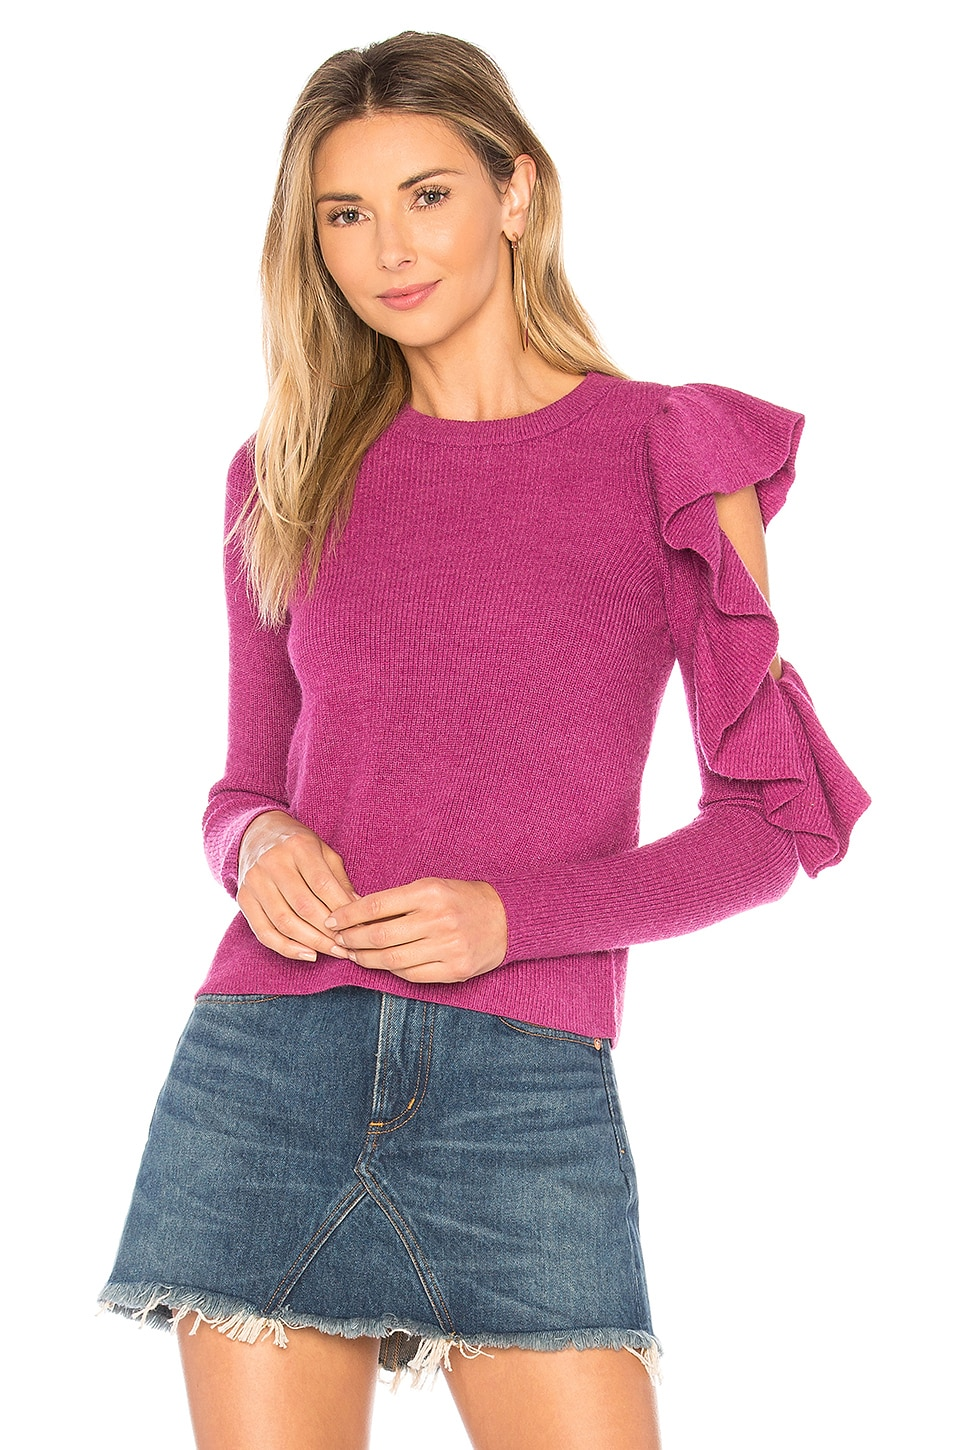 Lovers + Friends Boss Woman Top in Fuchsia